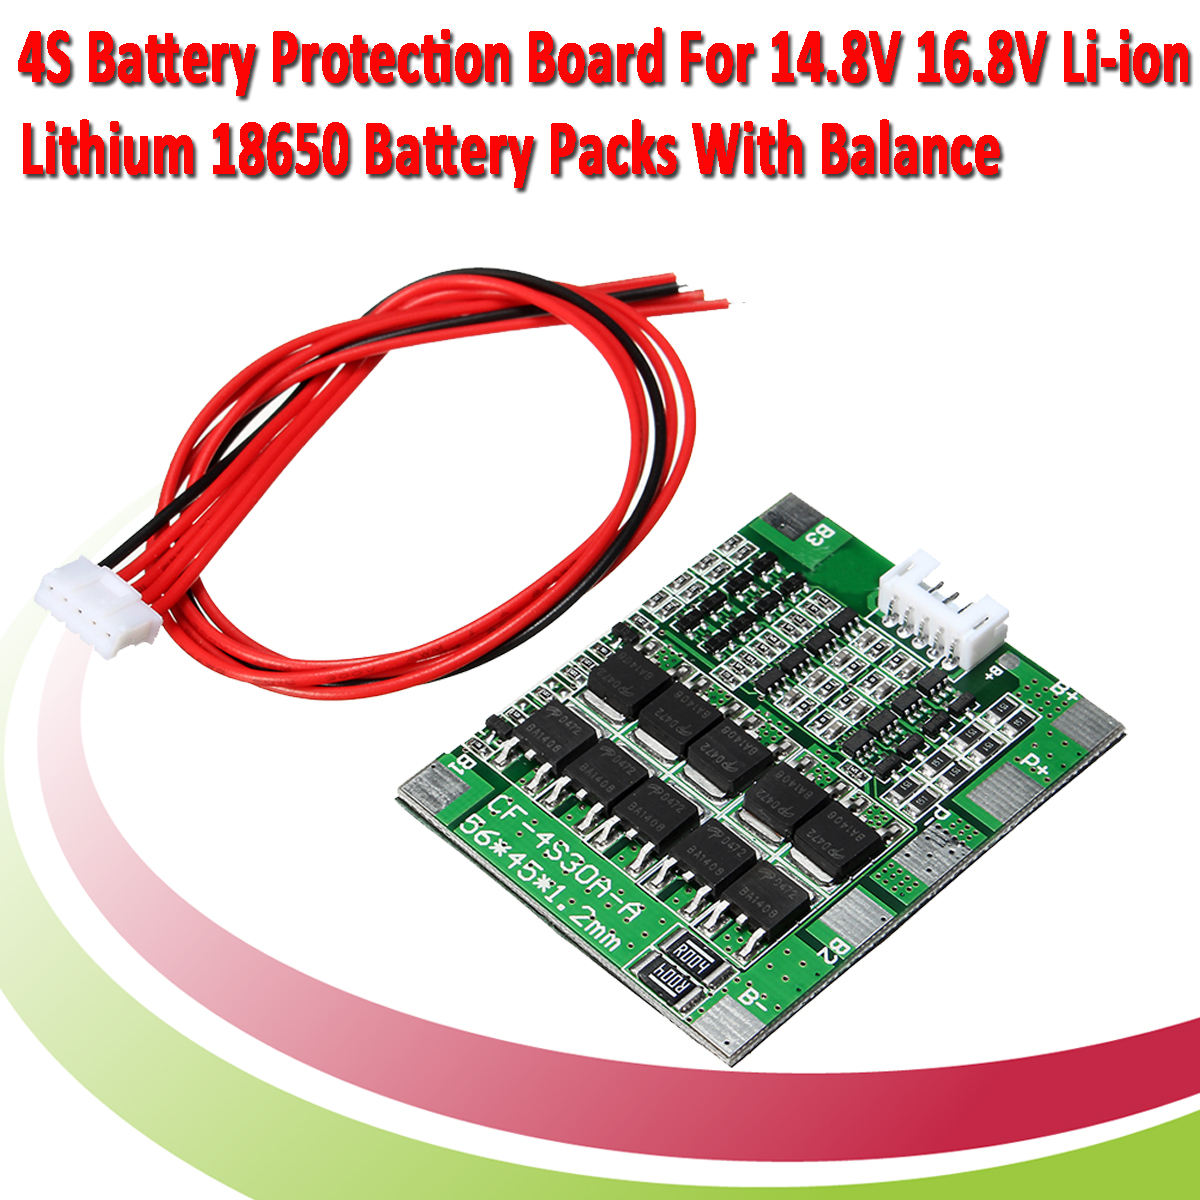 3Pcs 4S 30A 14.8V Li-ion Lithium 18650 Battery BMS Packs PCB Protection Board Balance